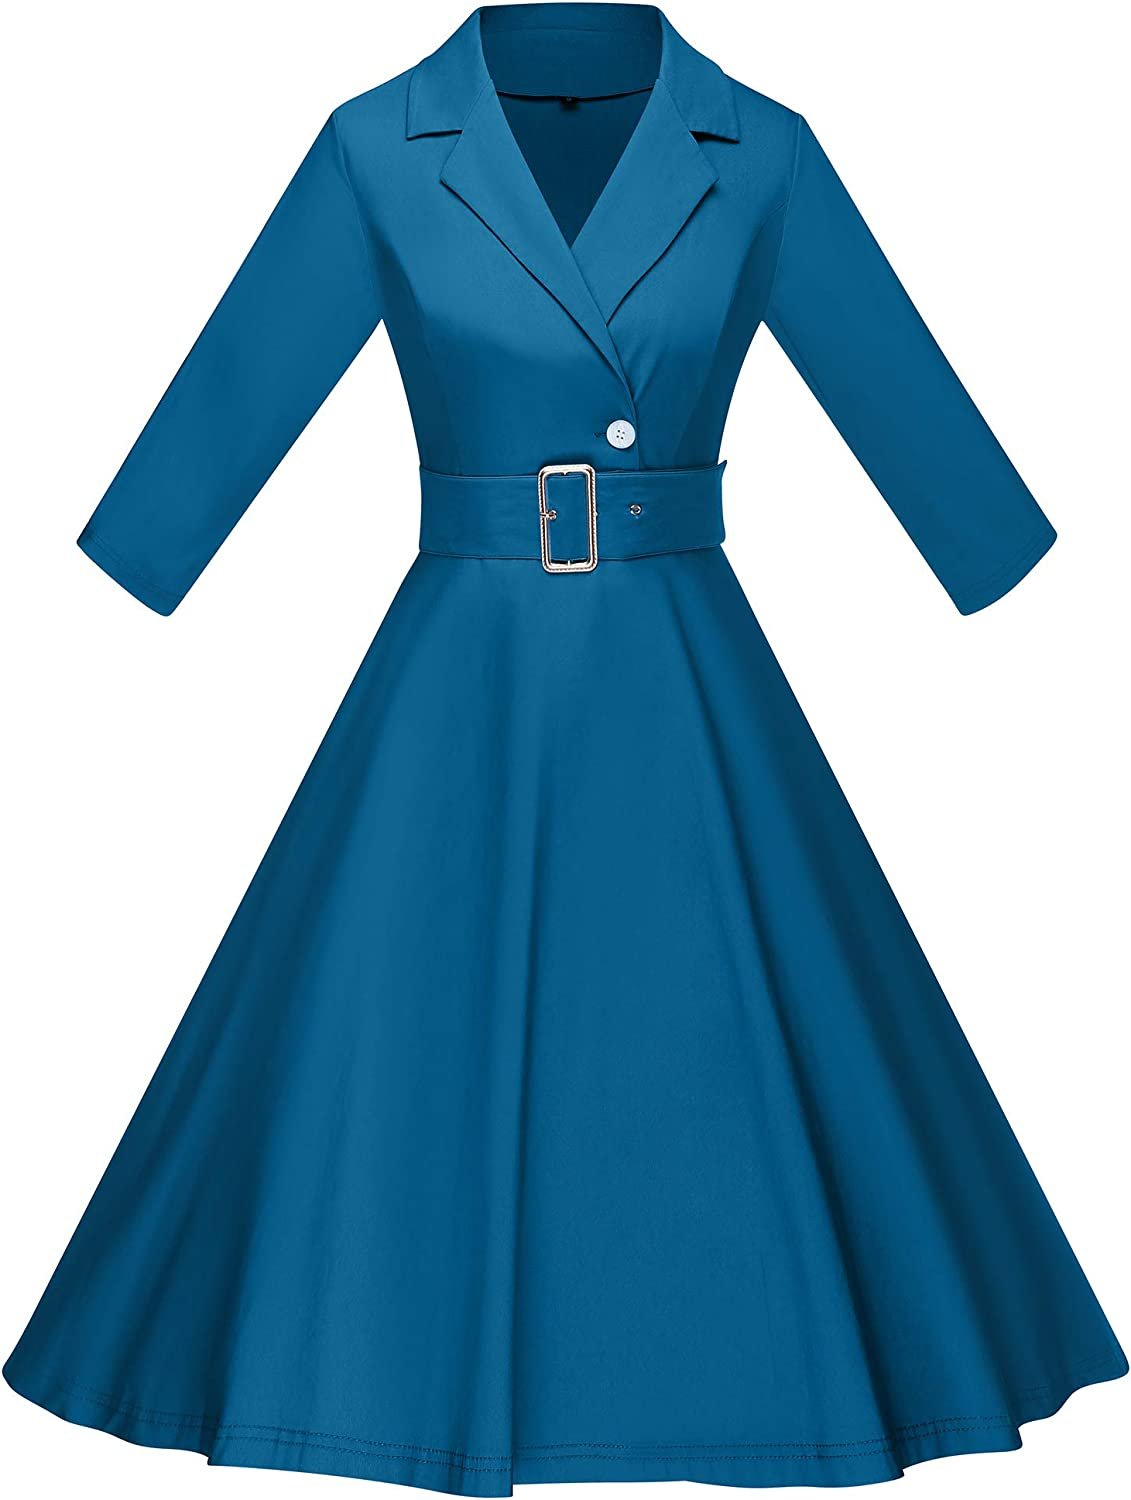 1950s Mature Women Fashion, Mrs. Clothing GownTown Womens 1950s Vintage Swing Dress with 3/4 Sleeves $26.99 AT vintagedancer.com